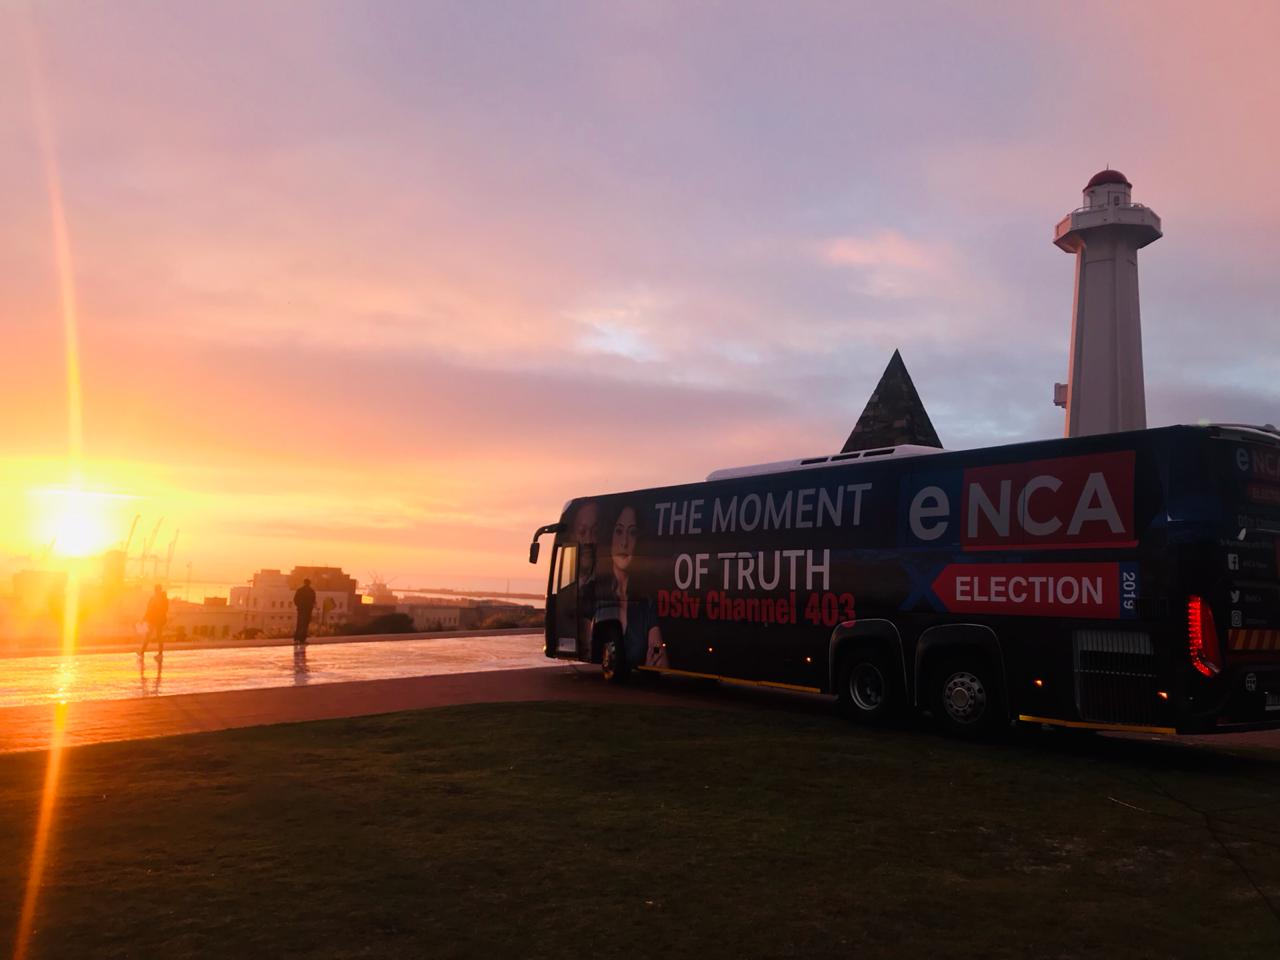 25 April - as the sun rises over Port Elizabeth, the eNCA Election Bus crew get ready to broadcast